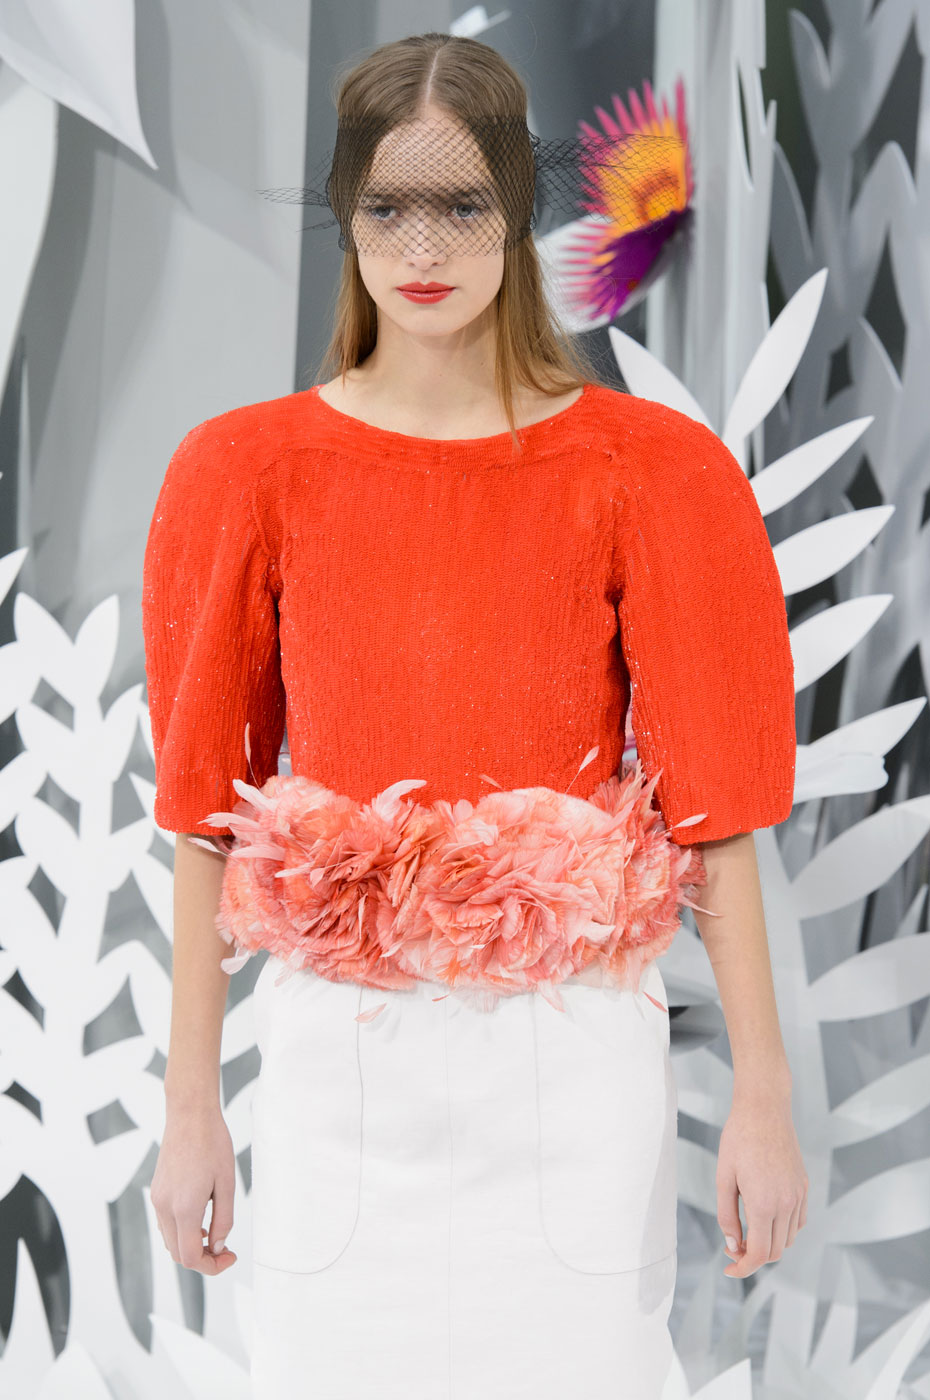 Chanel-fashion-runway-show-haute-couture-paris-spring-summer-2015-the-impression-108